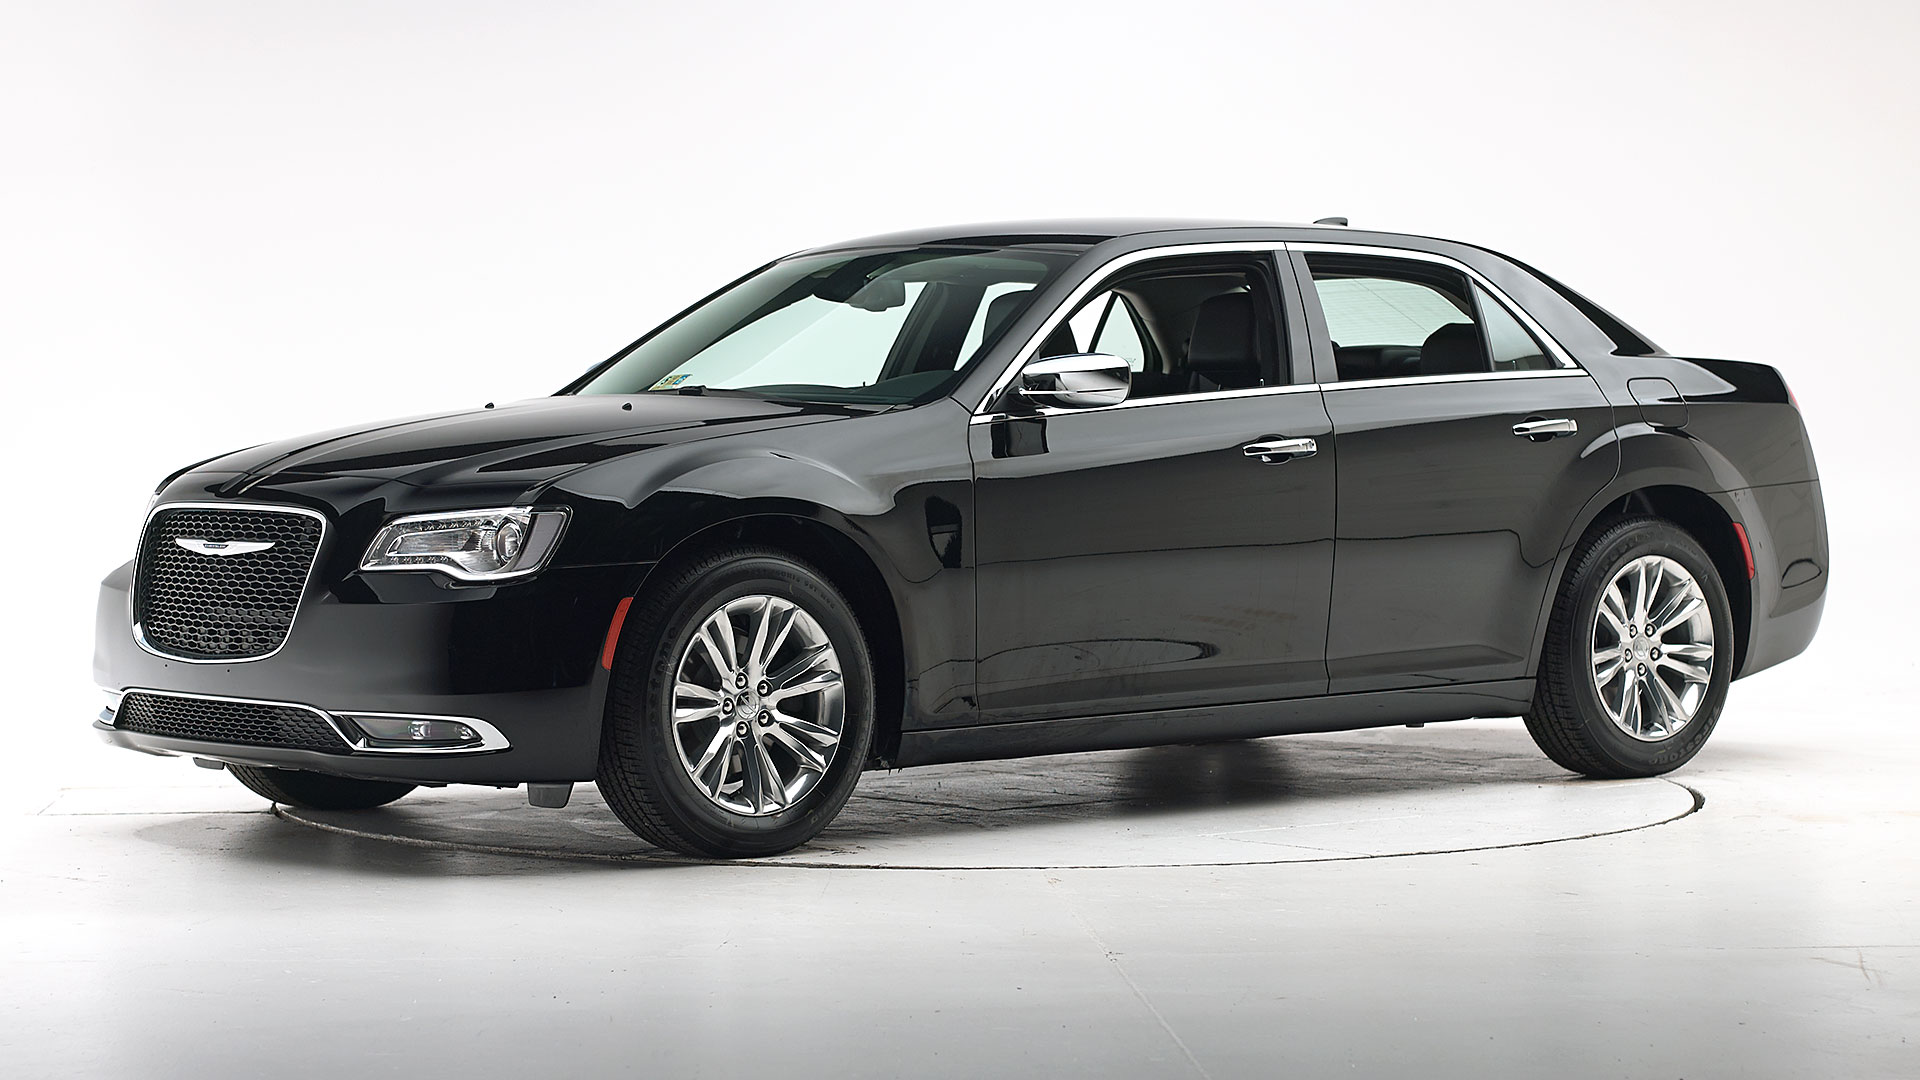 2019 Chrysler 300 4-door sedan